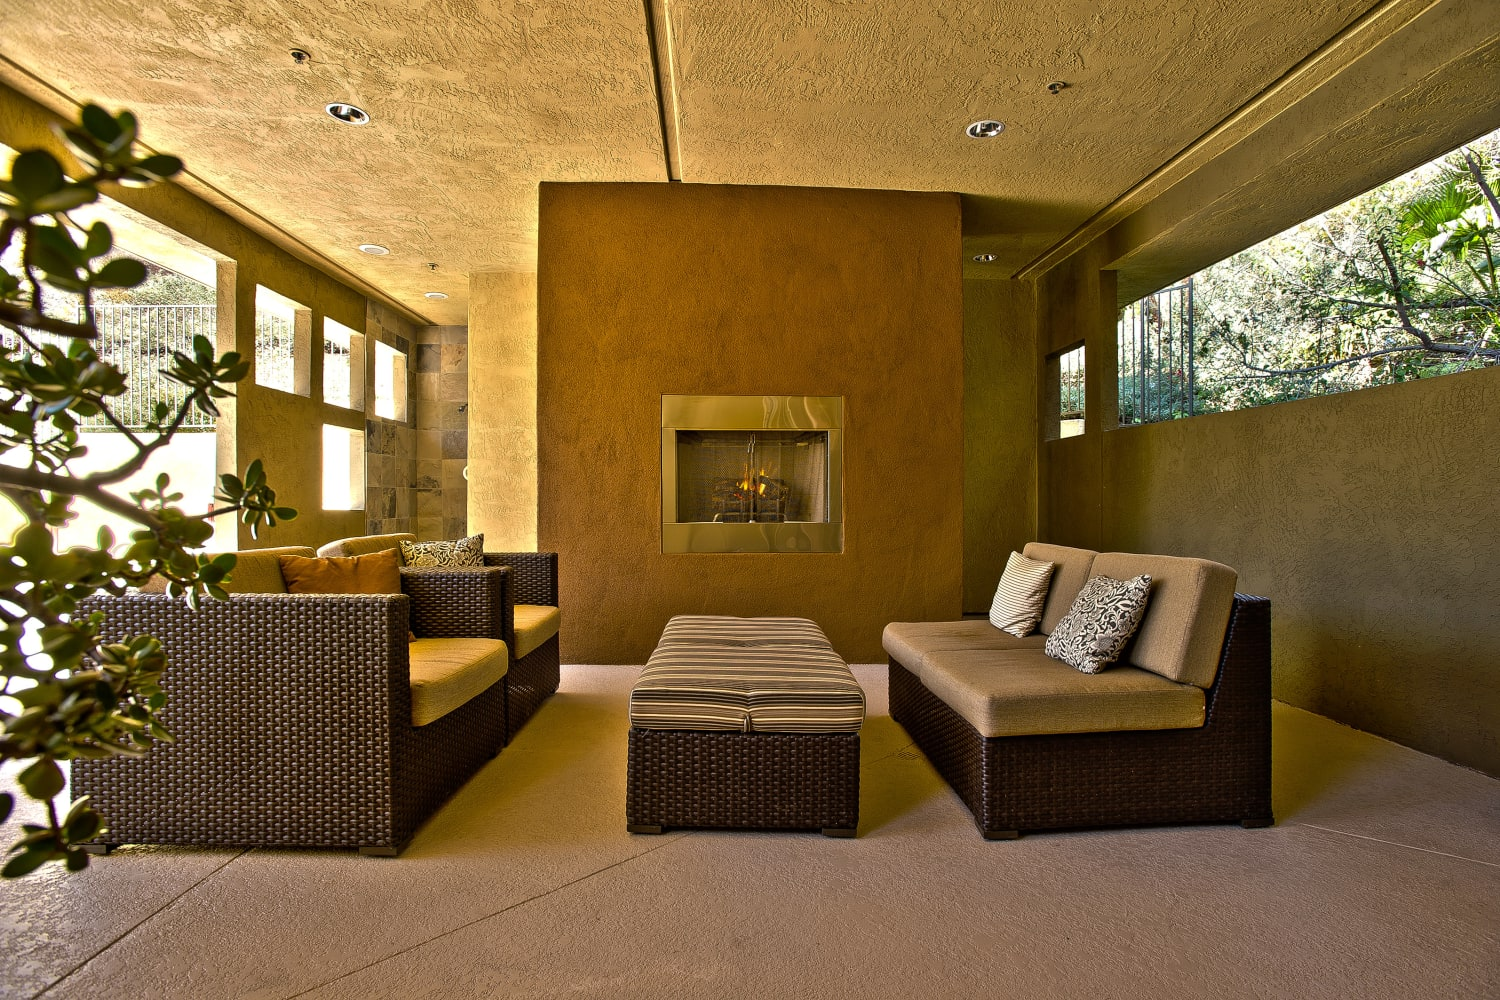 Enjoy a covered patio at Fashion Terrace in San Diego, California